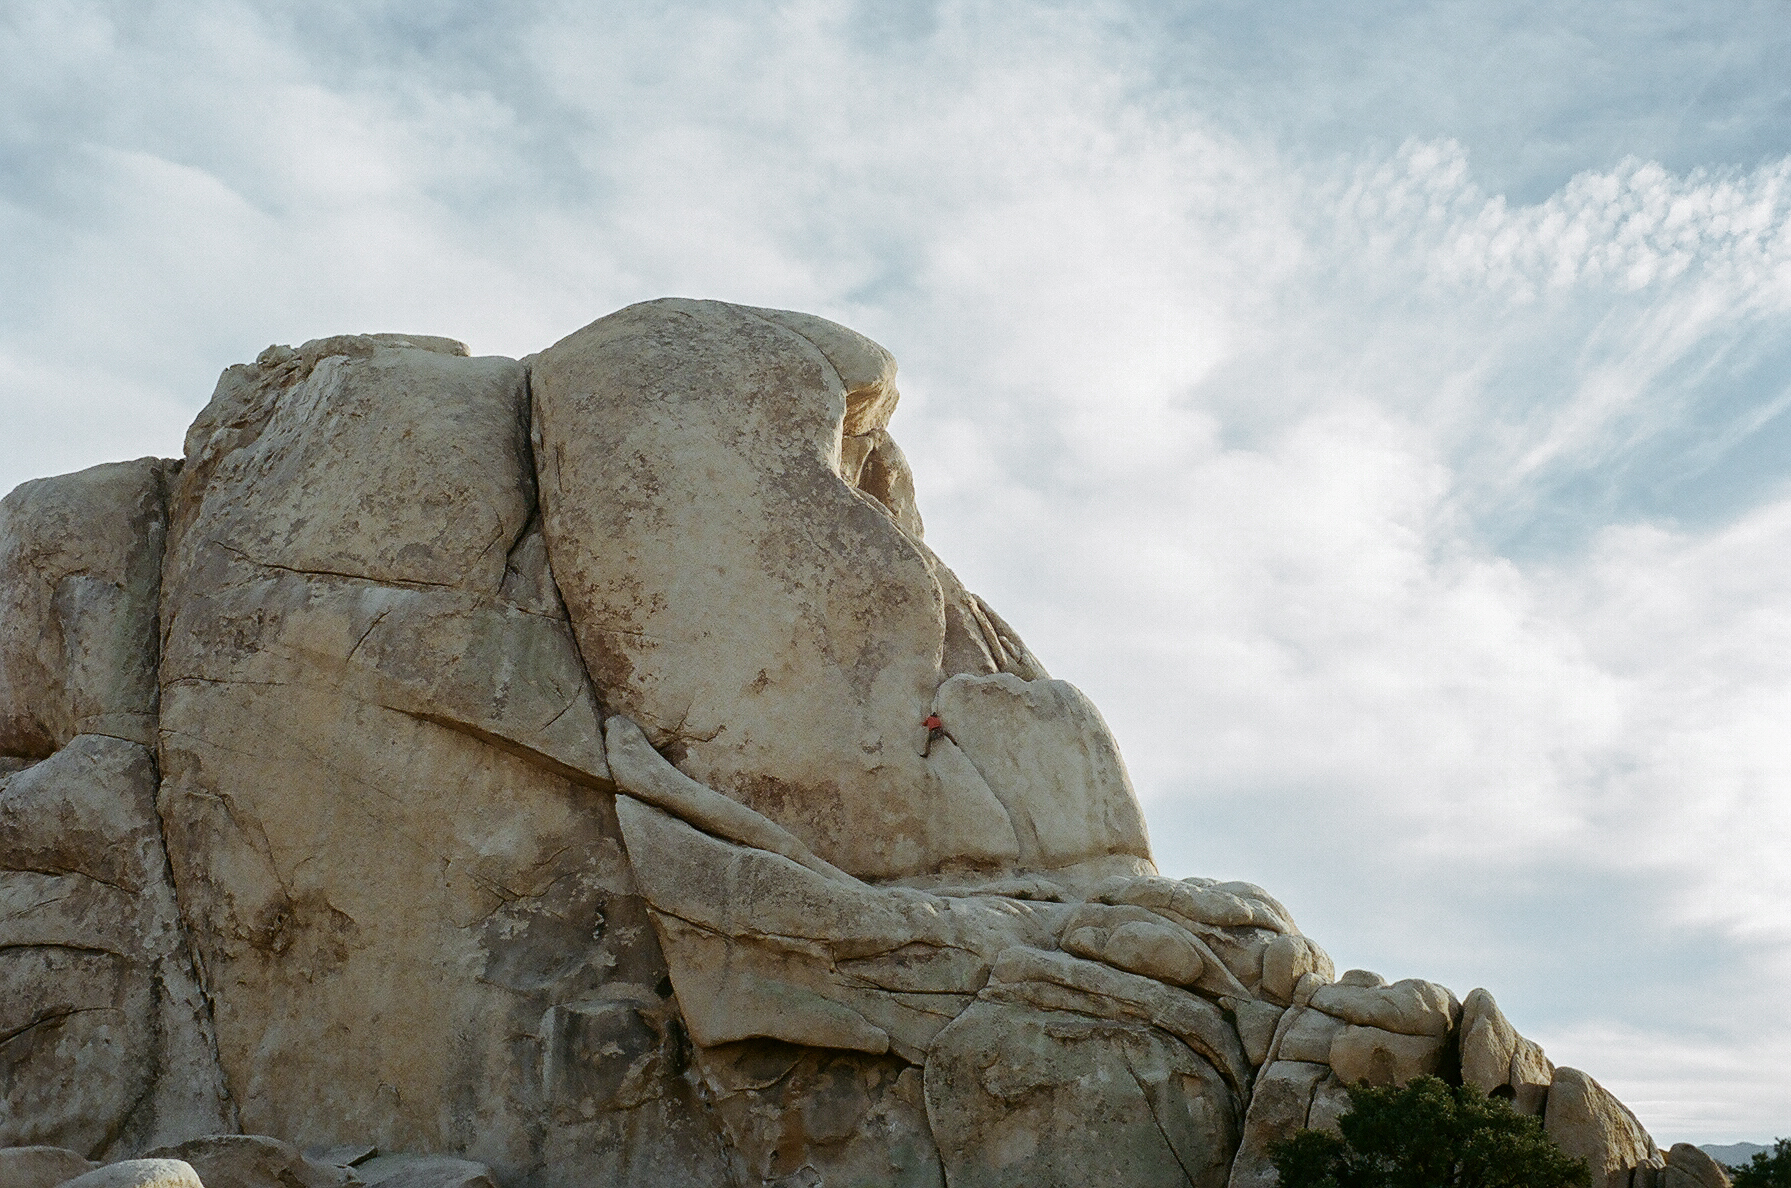 Intersection Rock in Joshua Tree National Park